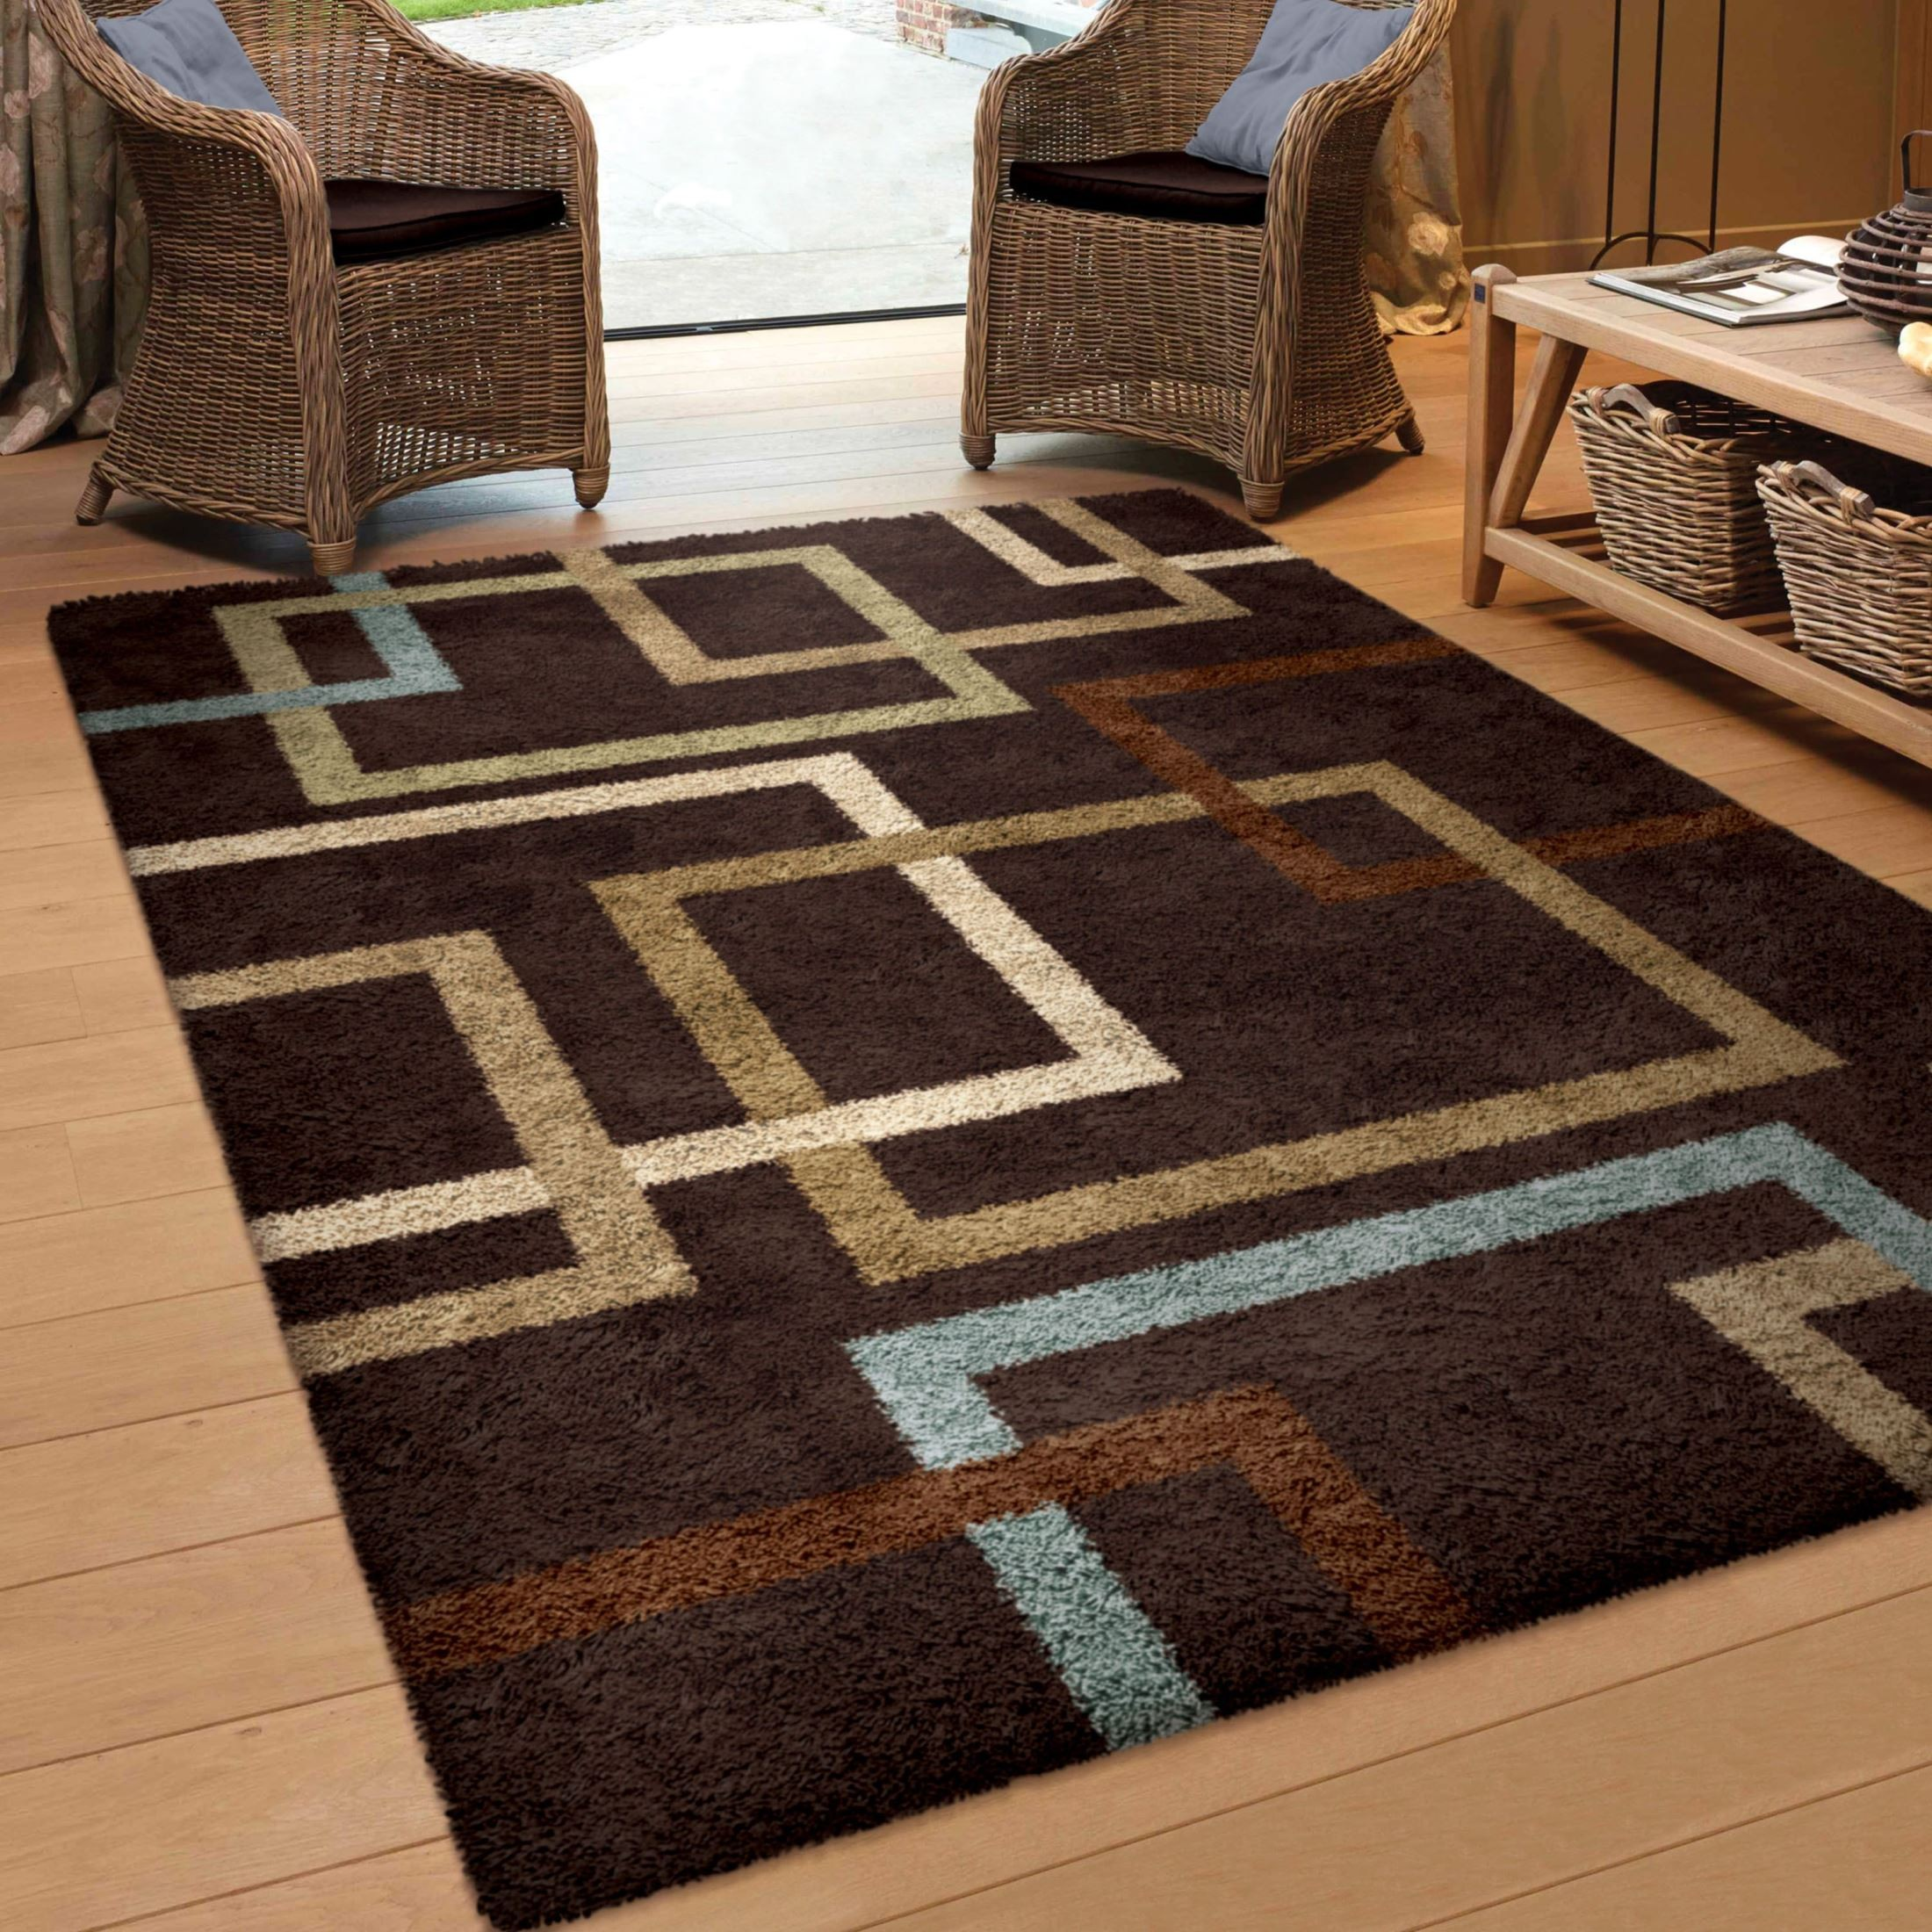 Cuffing Mocha Large Rug From Orian 3705 8x11 Coleman